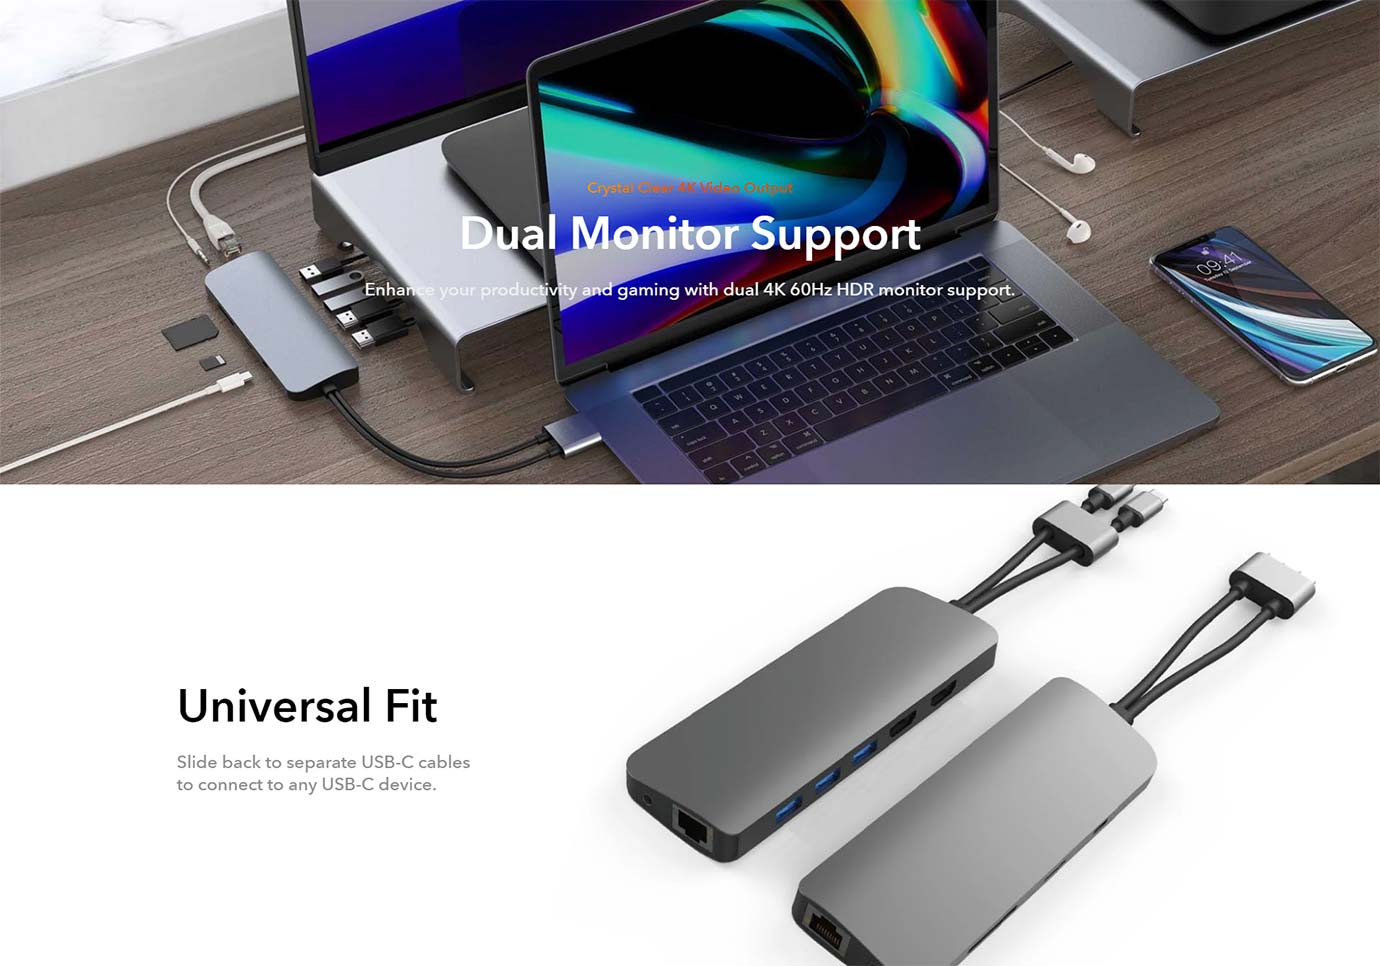 HyperDrive Viper 10-in-2 USB-C Hub